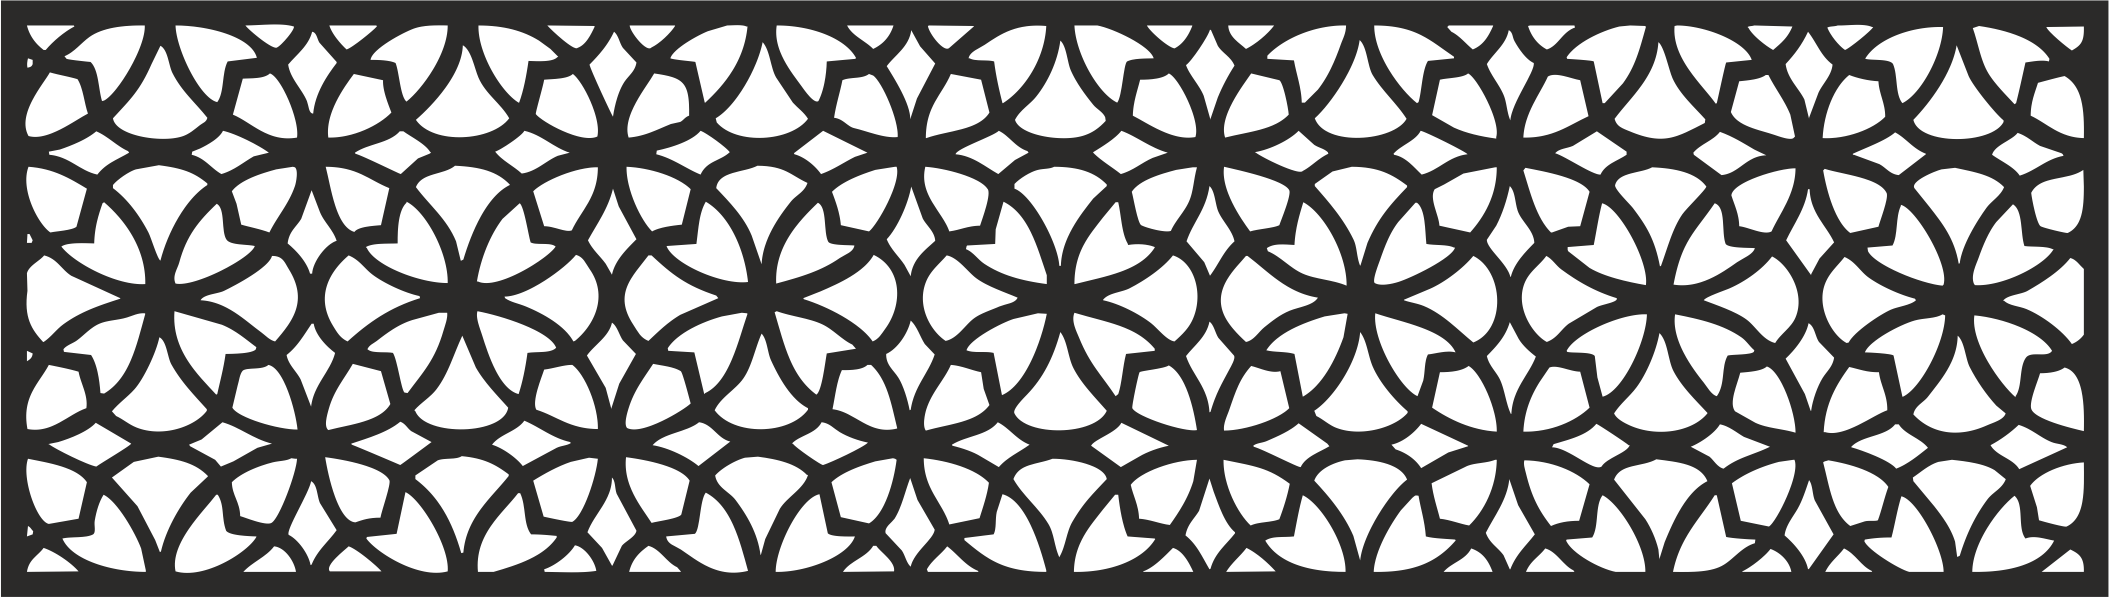 Laser Cut Pattern Template Wood Screen Free Vector Download - 3axis.co